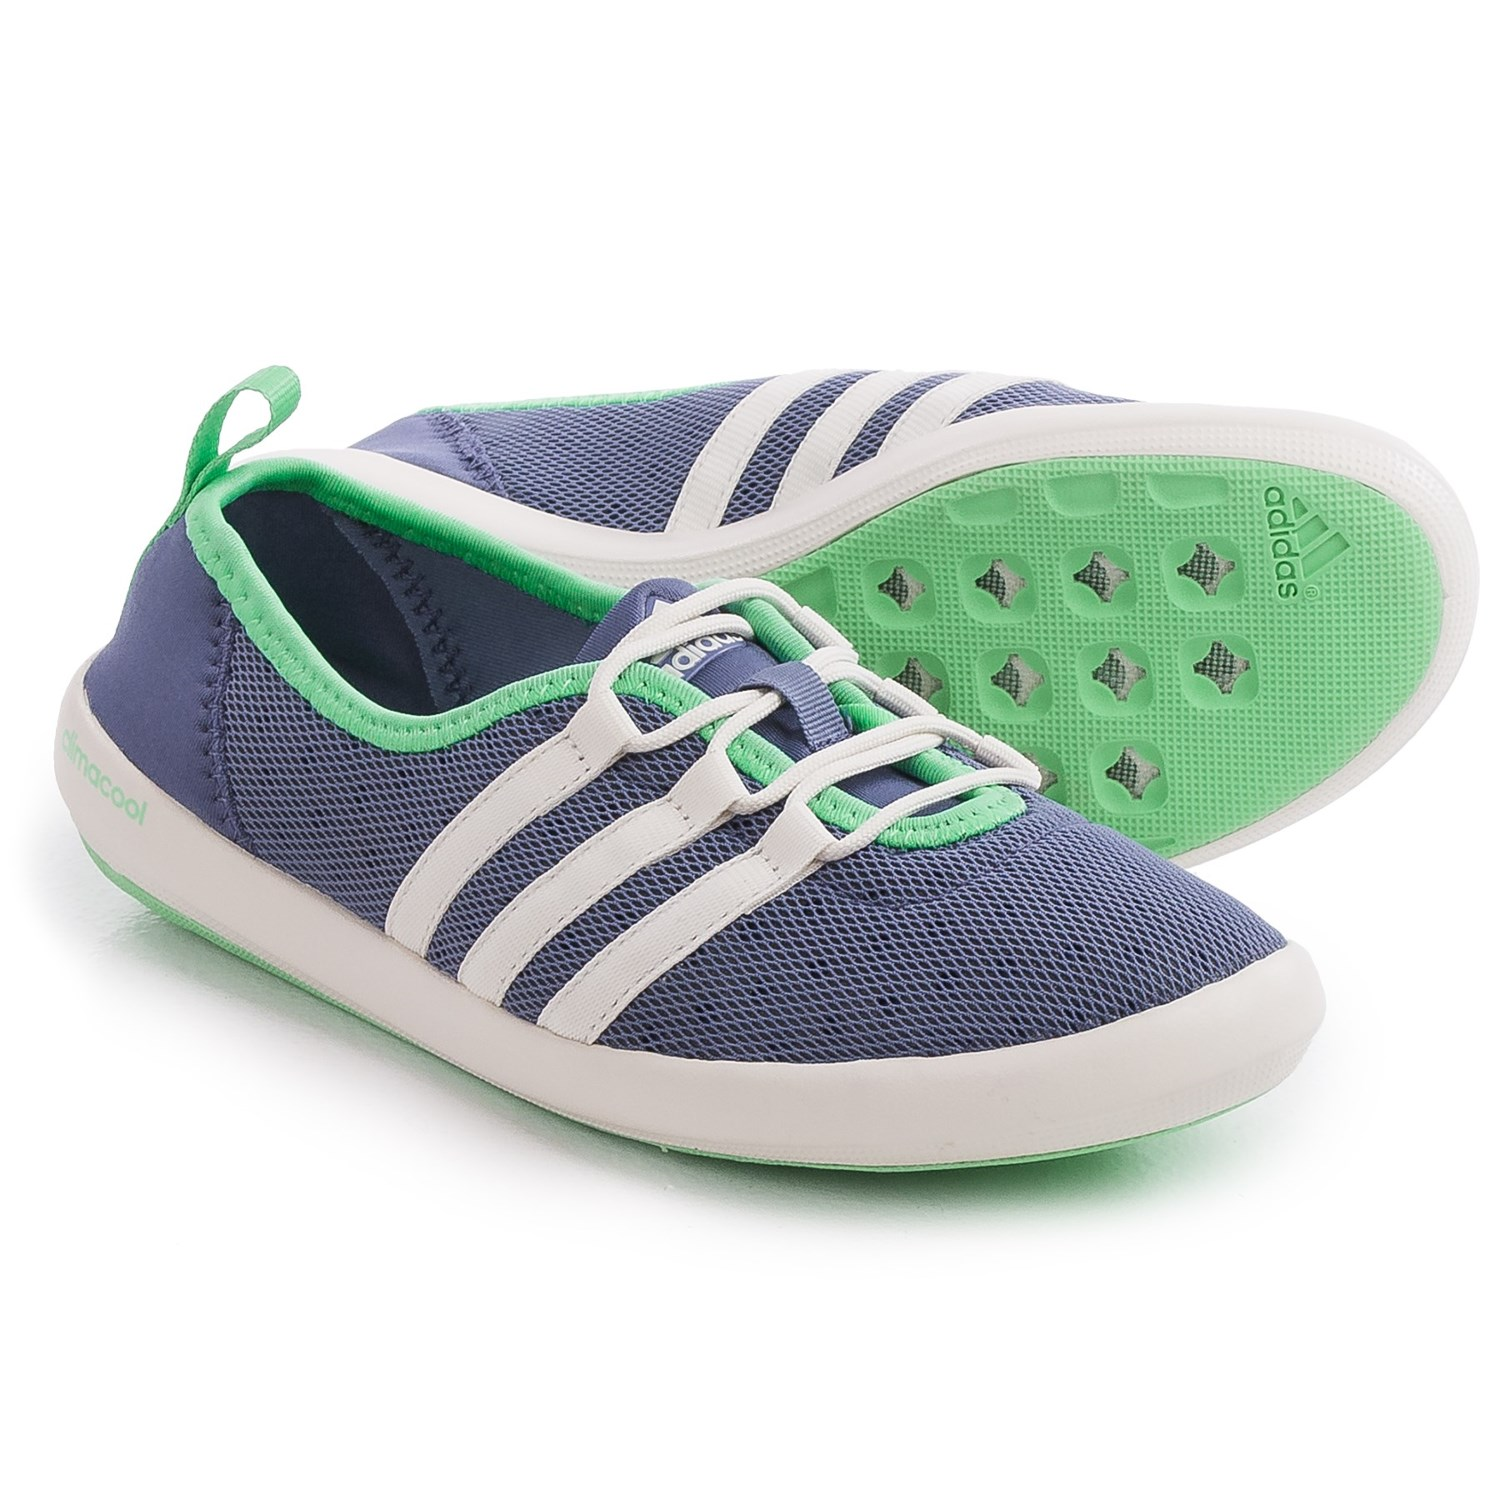 adidas outdoor climacool 174 boat sleek water shoes for